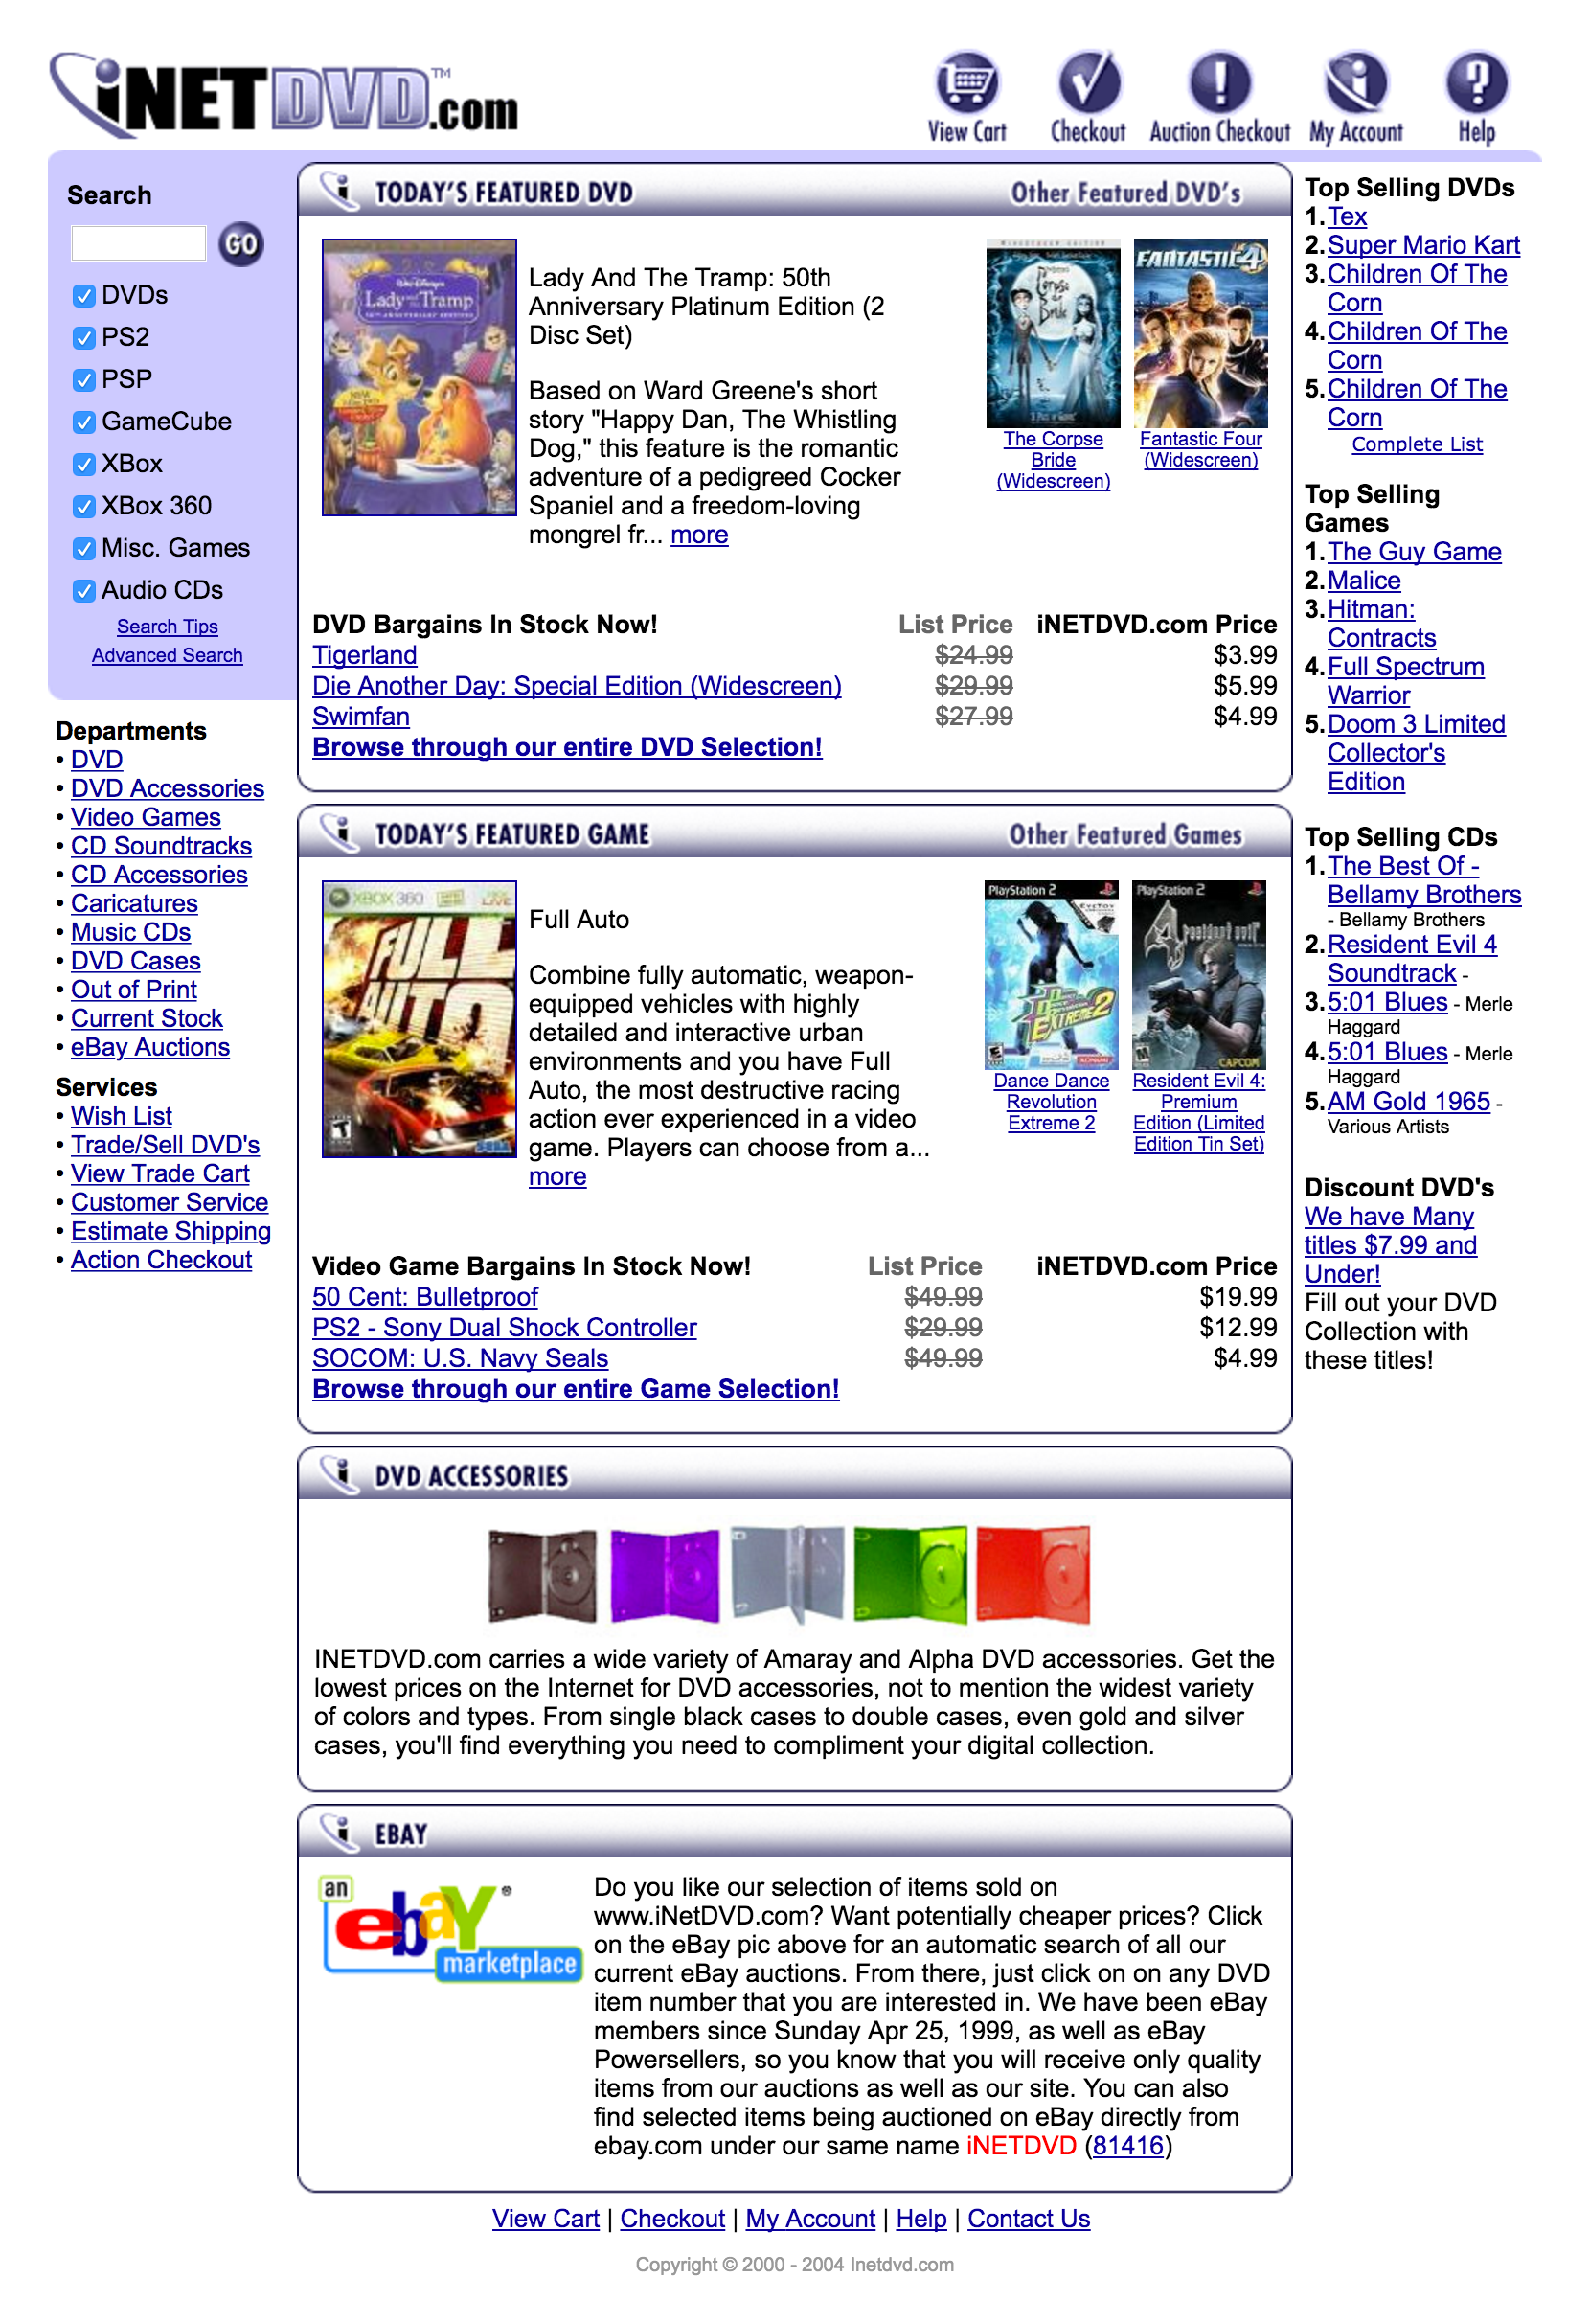 iNetDVD.com Website Homepage Design 2003